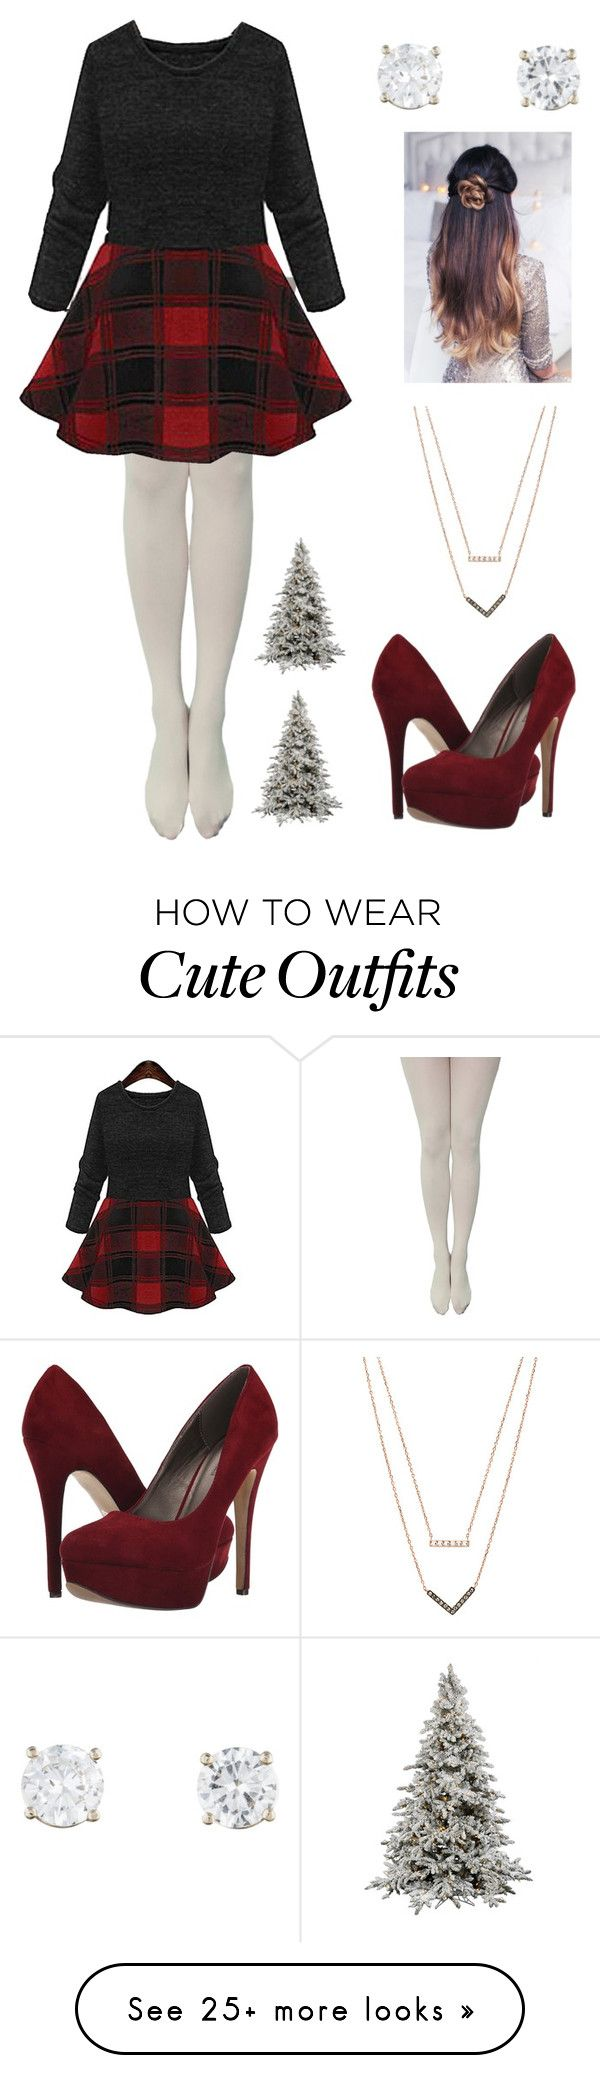 """My Idea of a Christmas Outfit"" by from-mina-with-love on Polyvore featuring Michael Antonio and Michael Kors"